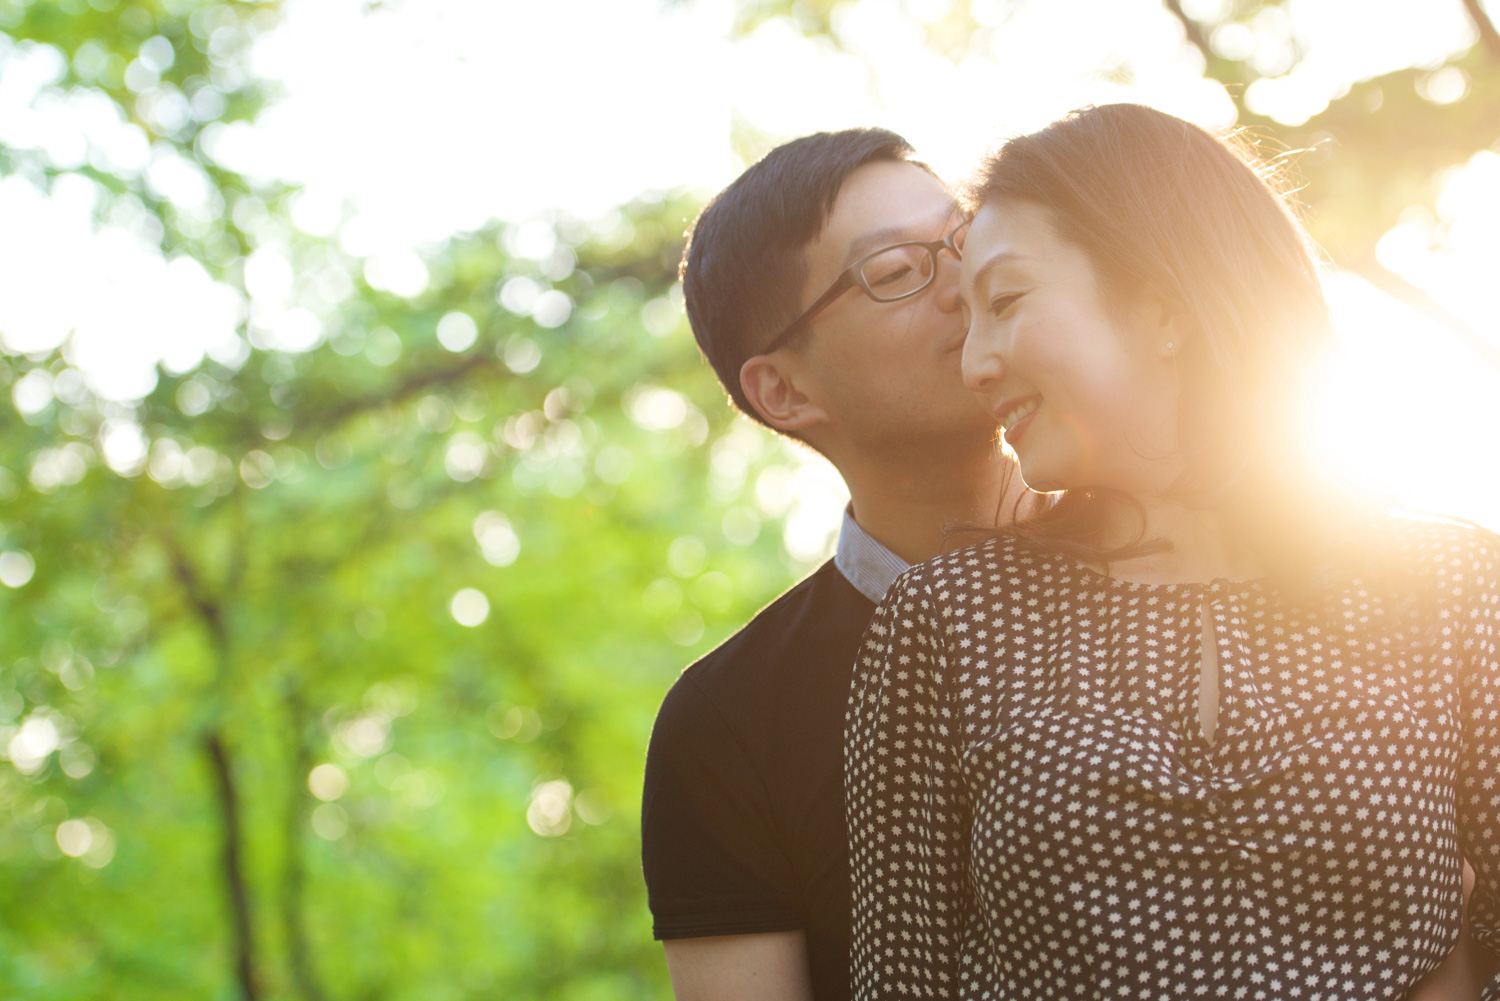 new-york-engagement-photographer-central-park-couple-kissing-sun-behind-back.jpg